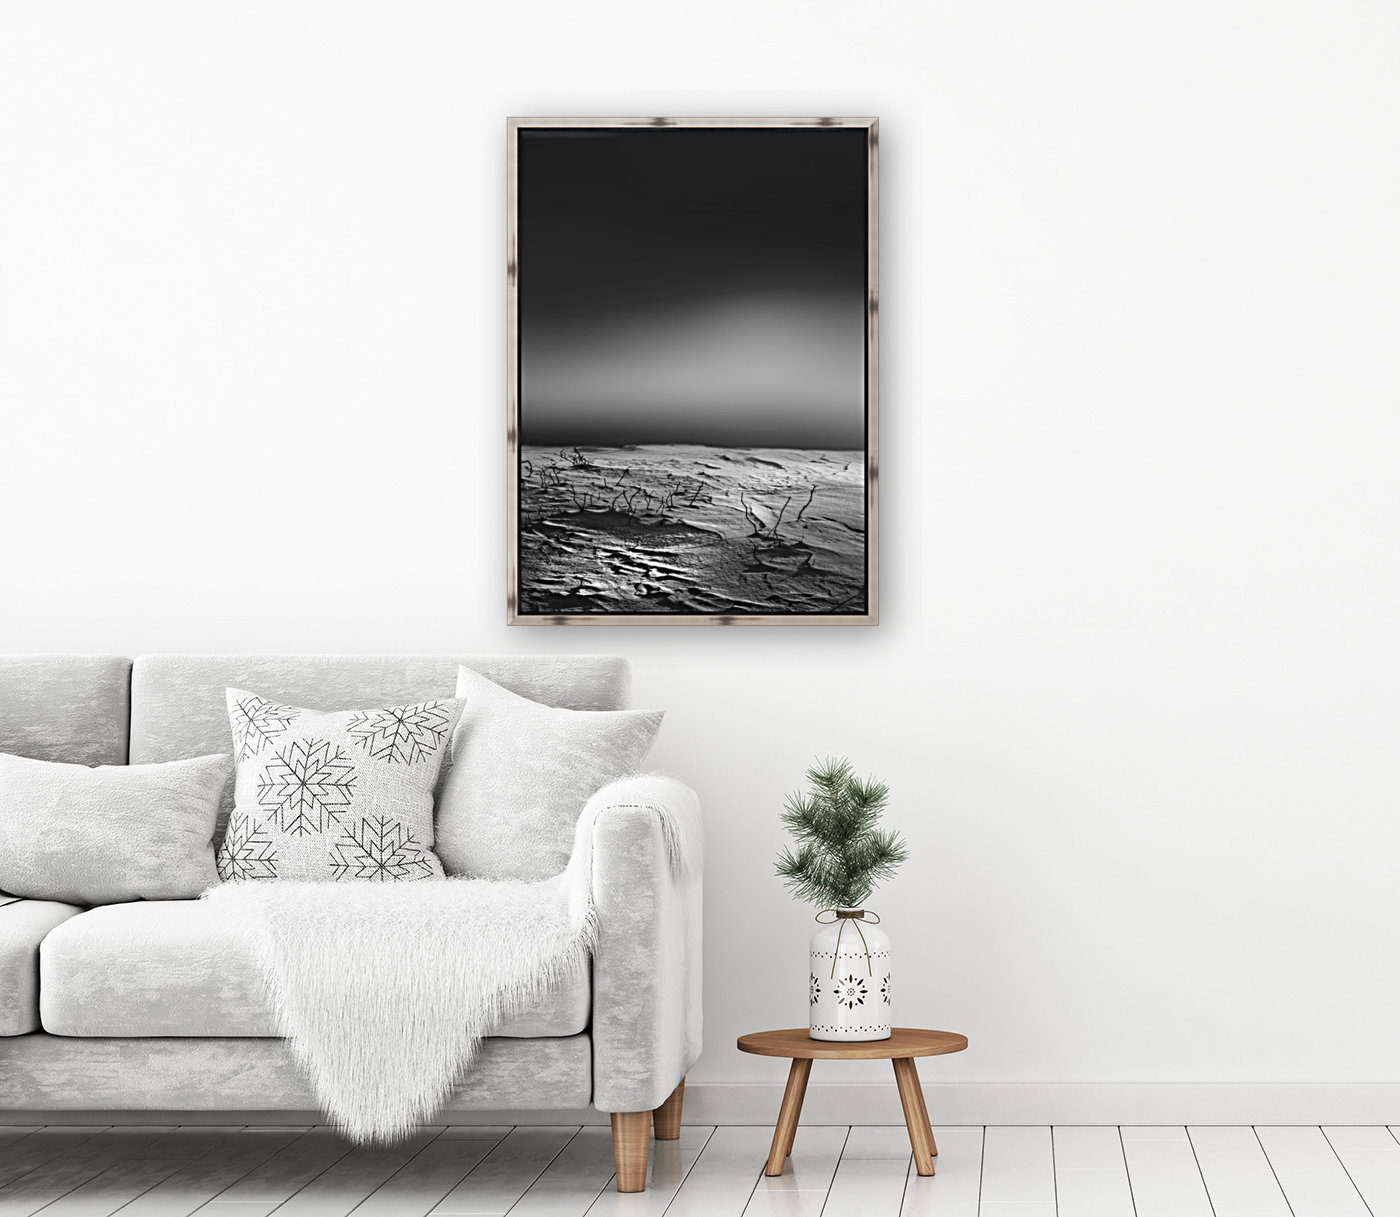 Silent Morning with Floating Frame